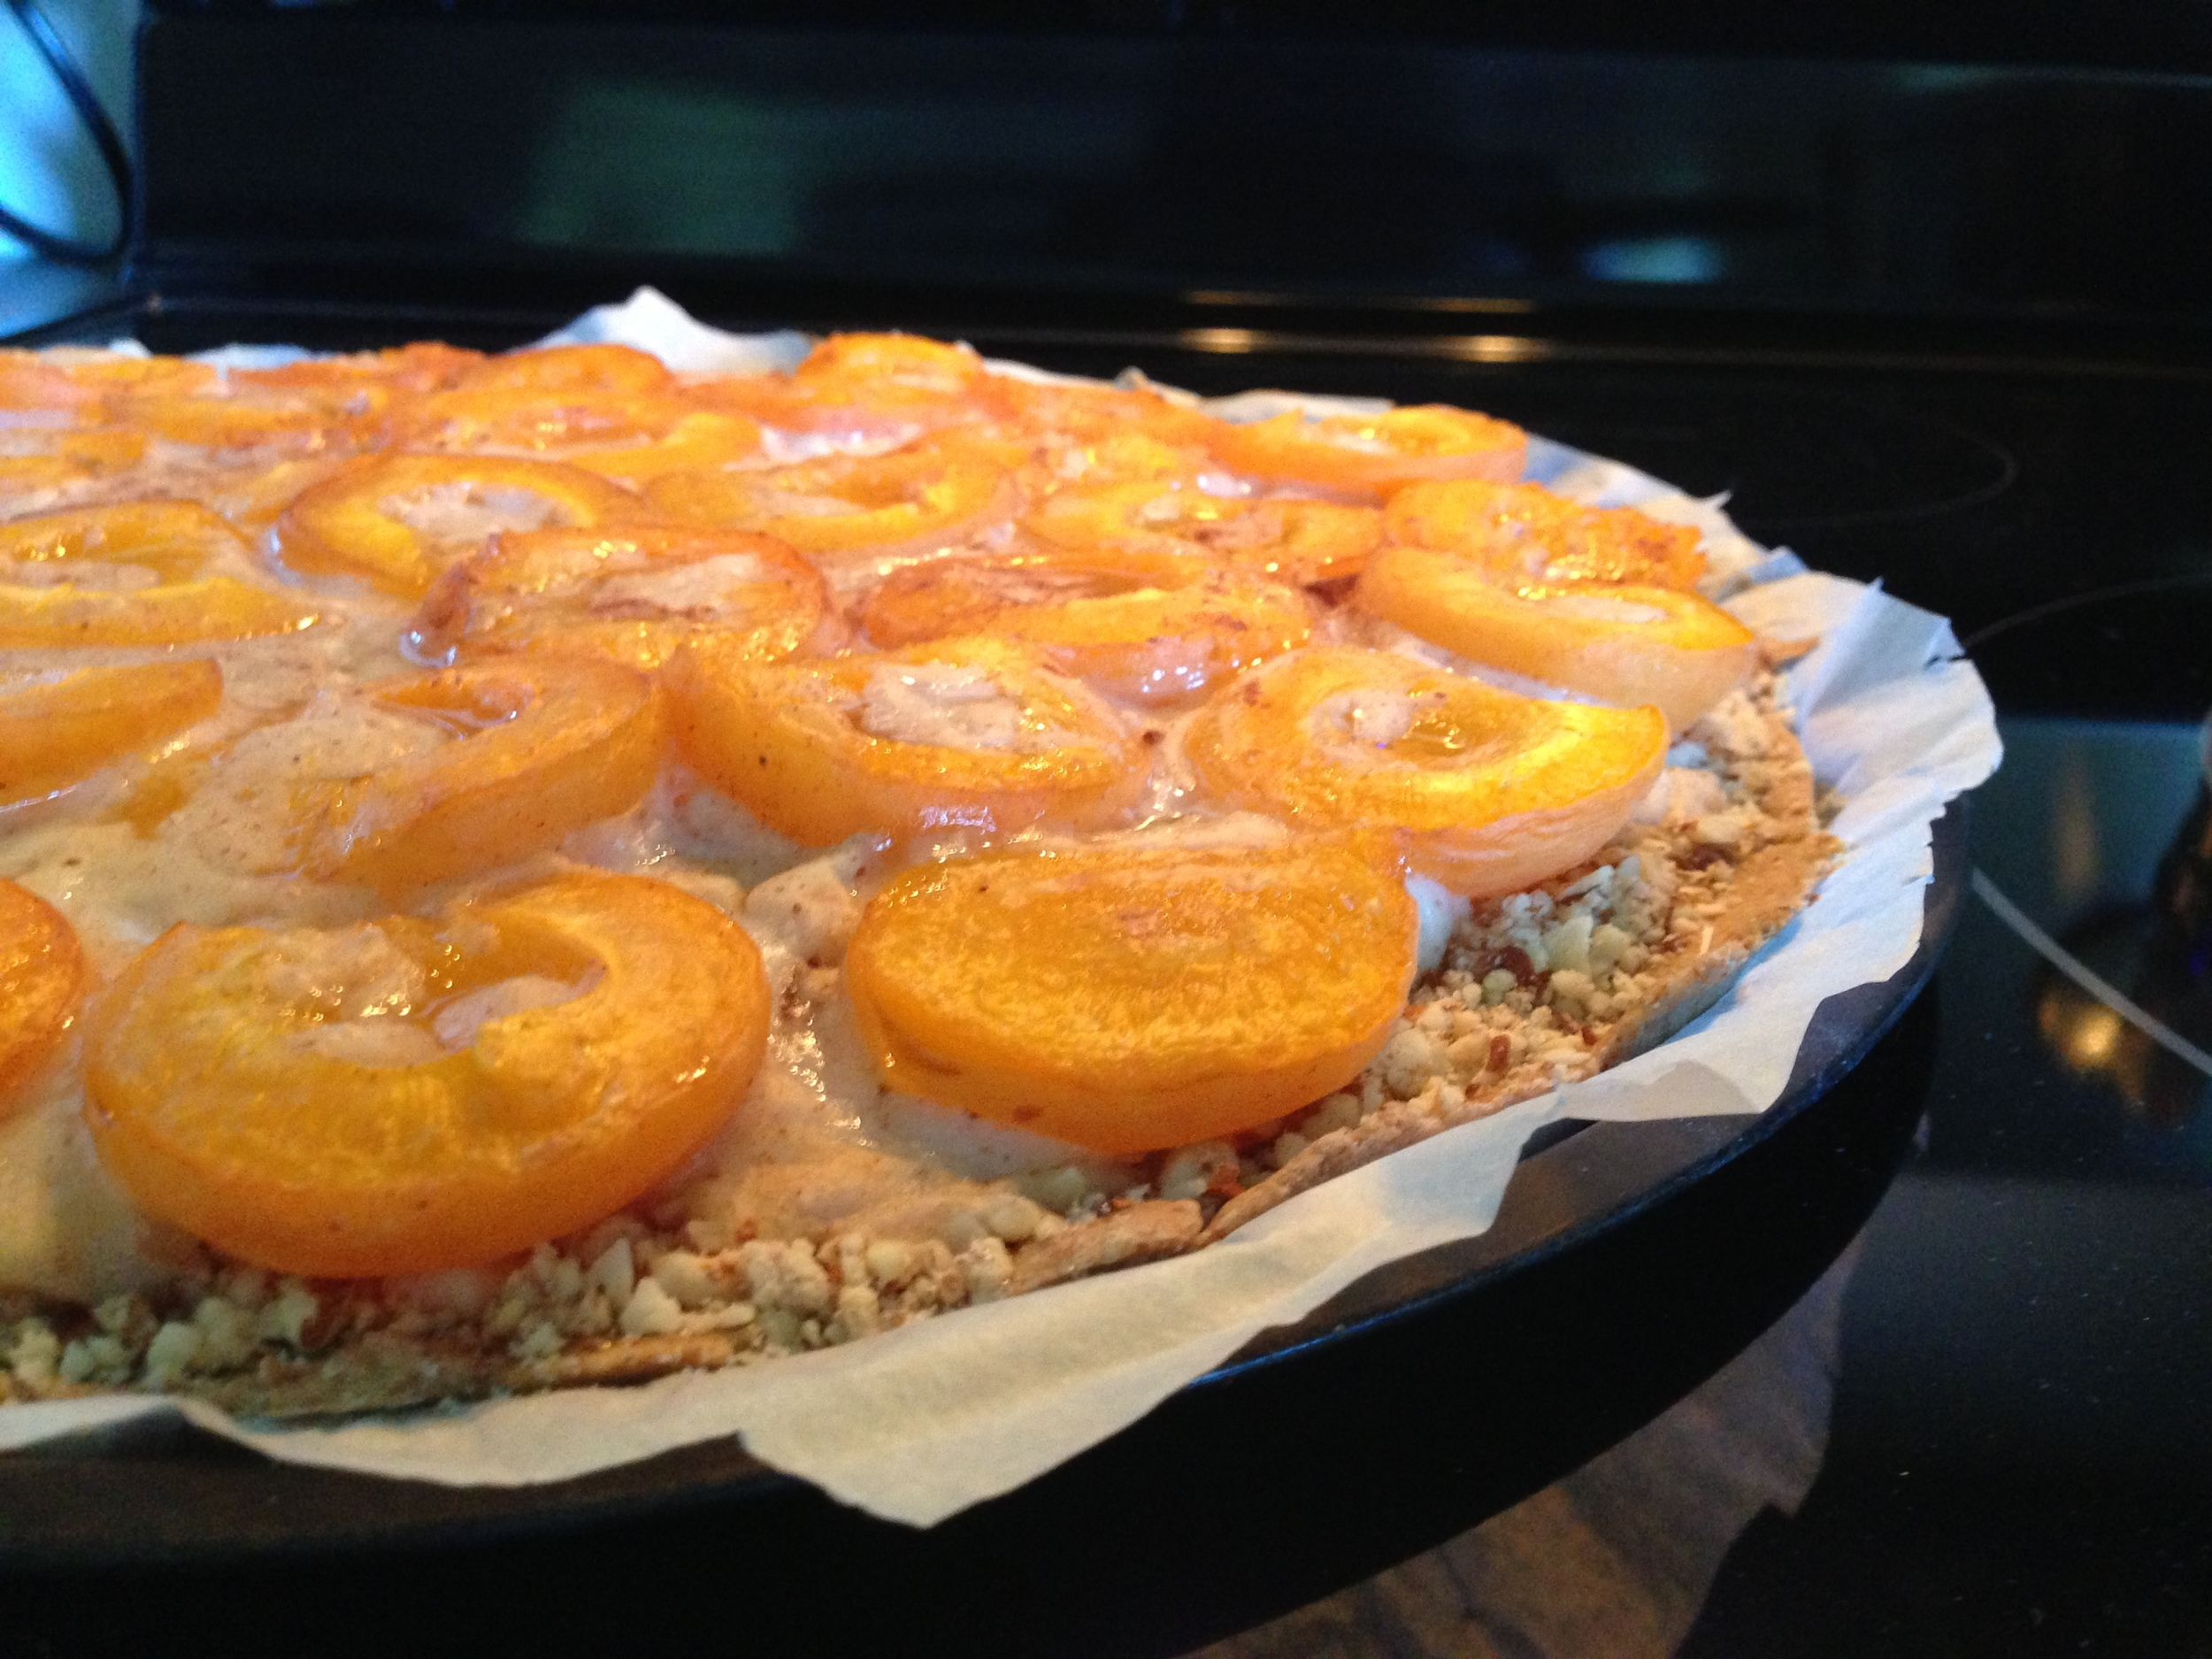 Fresh outta the oven! Warm & Juicy Apricots!